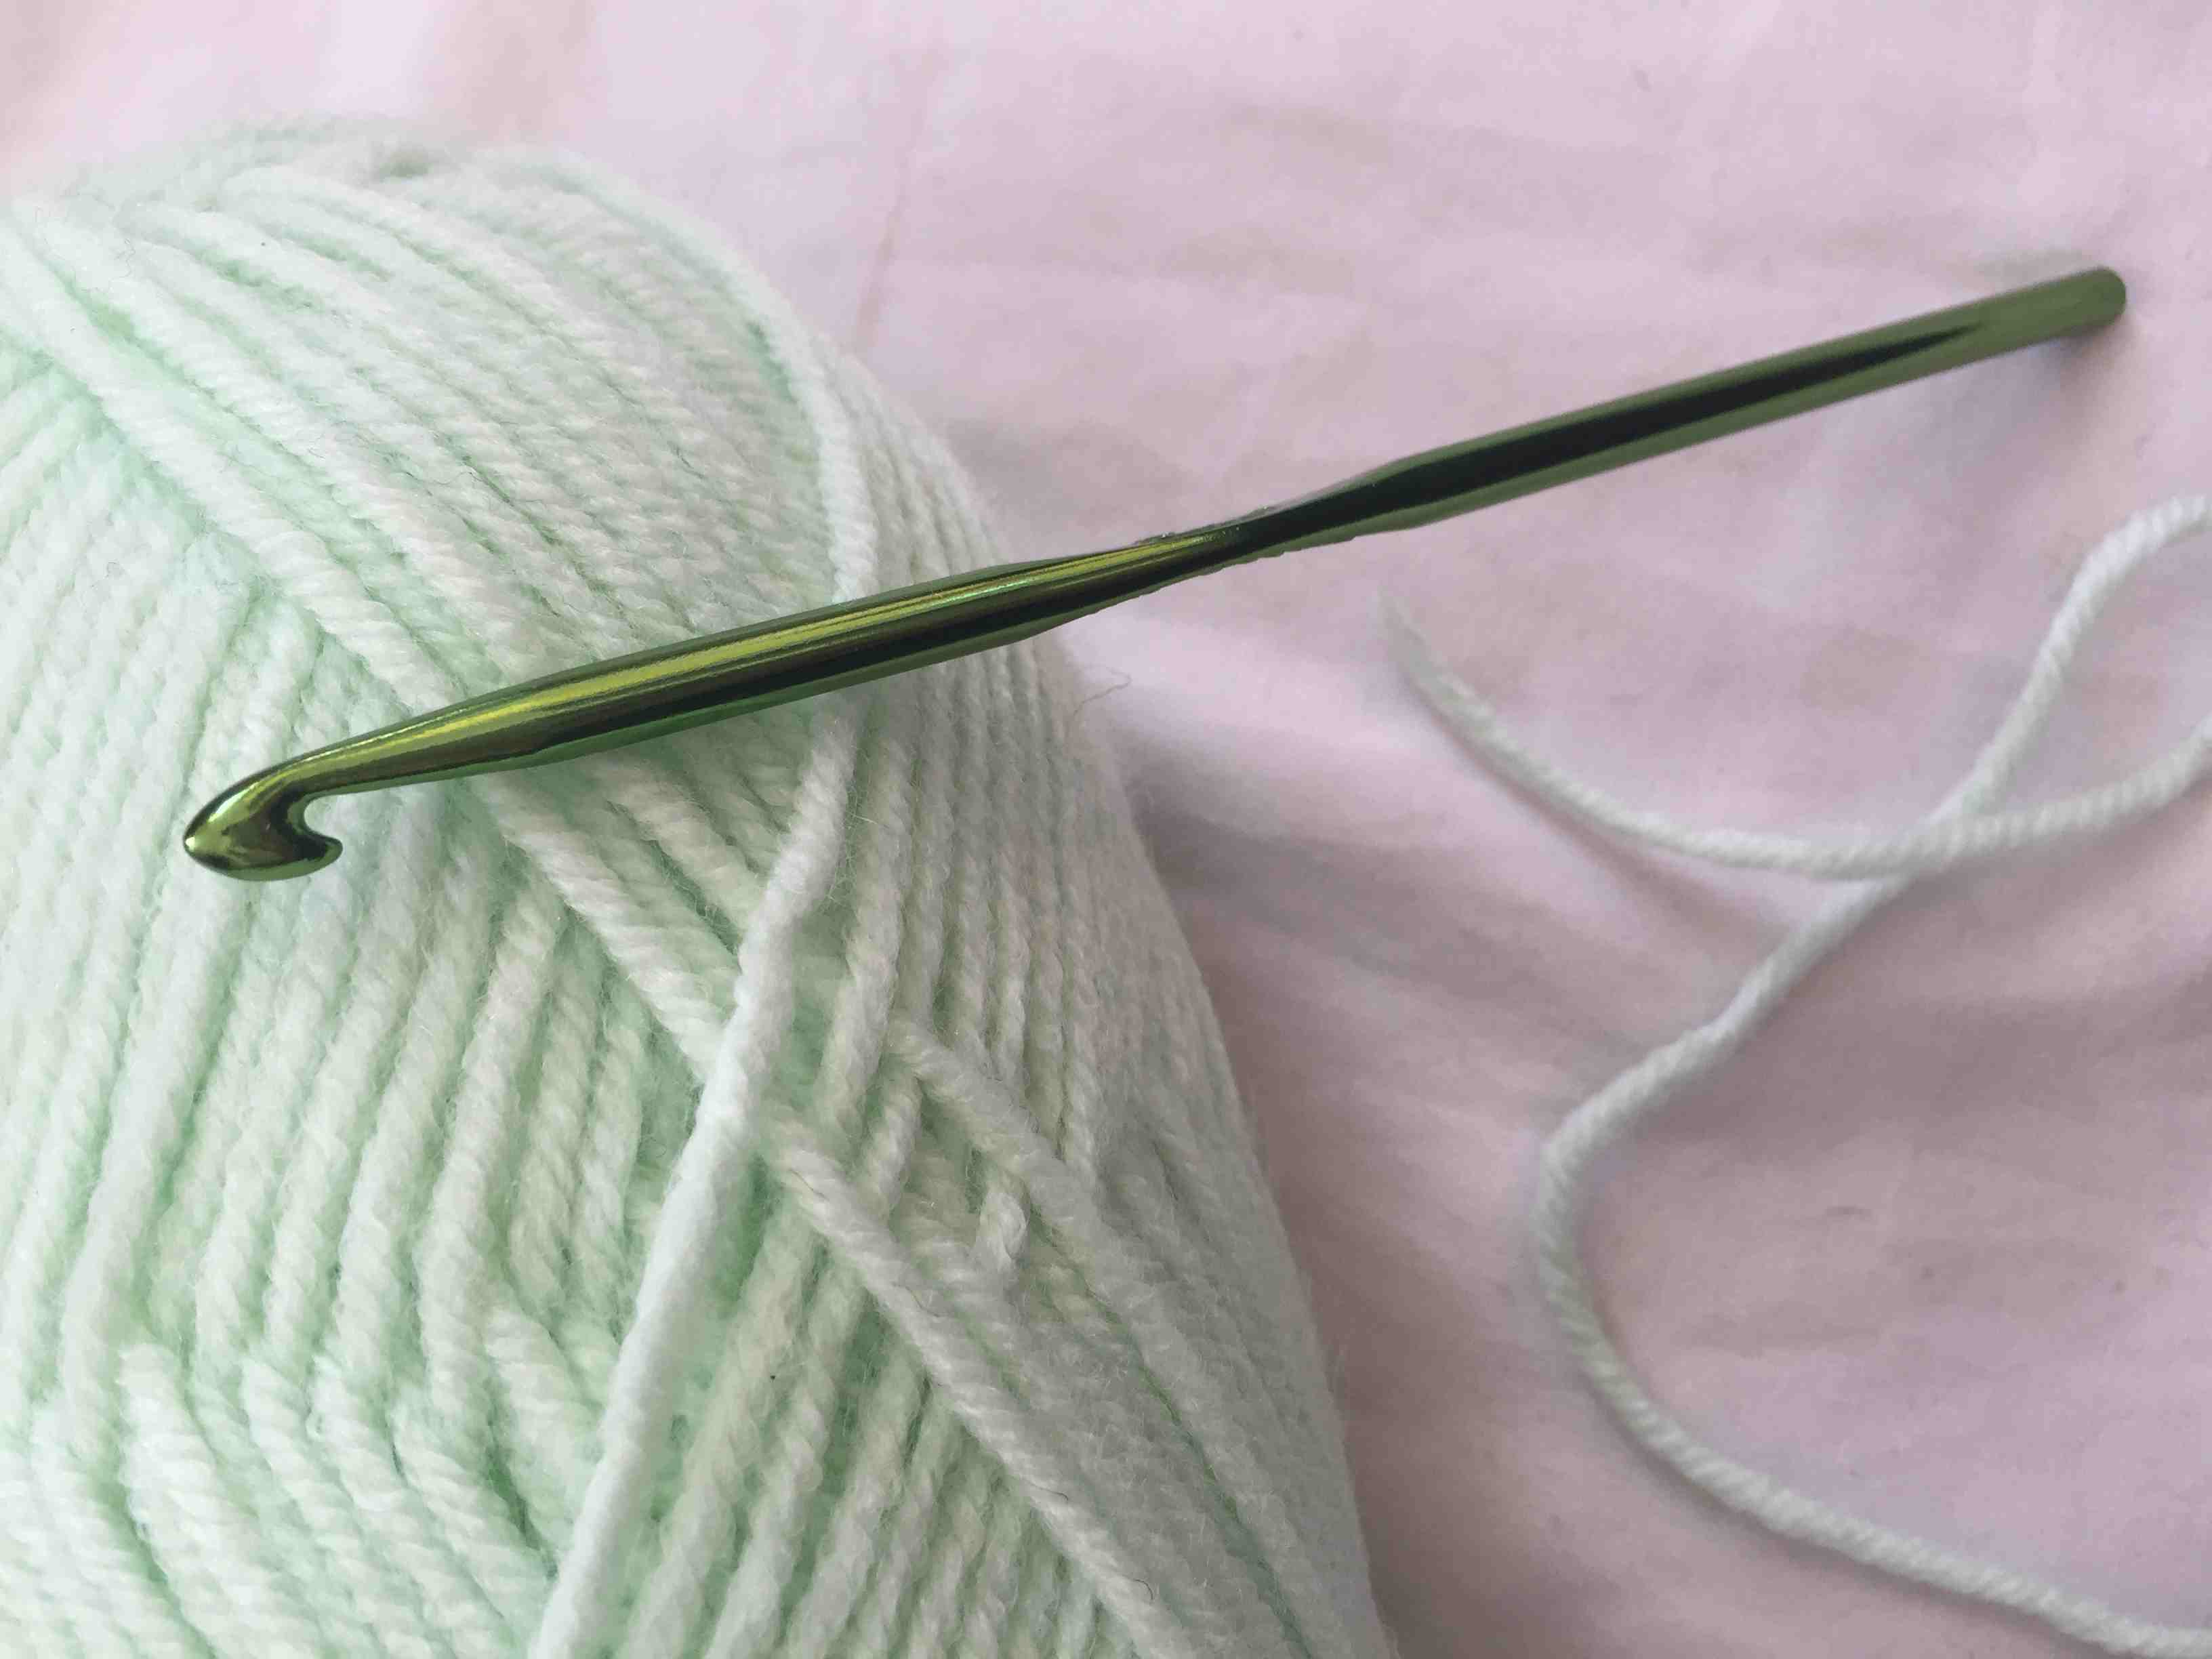 How To Crochet Half Double Stitch Hdc First Stich Slip Knot Diagram Yarn And Hook